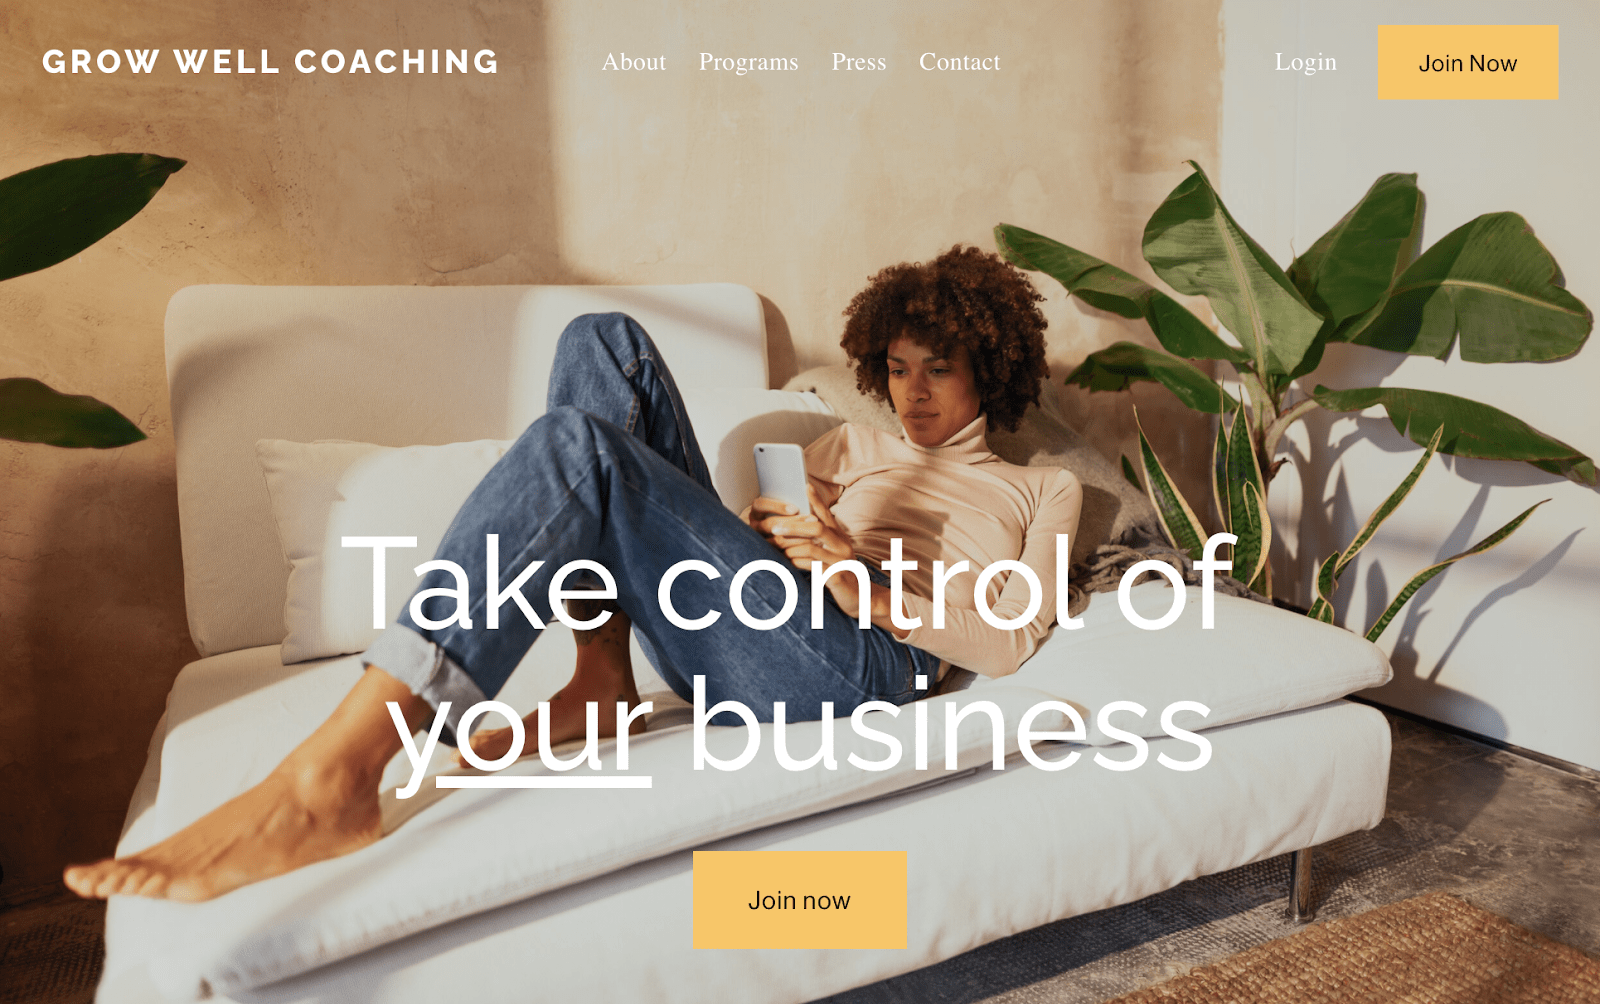 Squarespace Growwell template